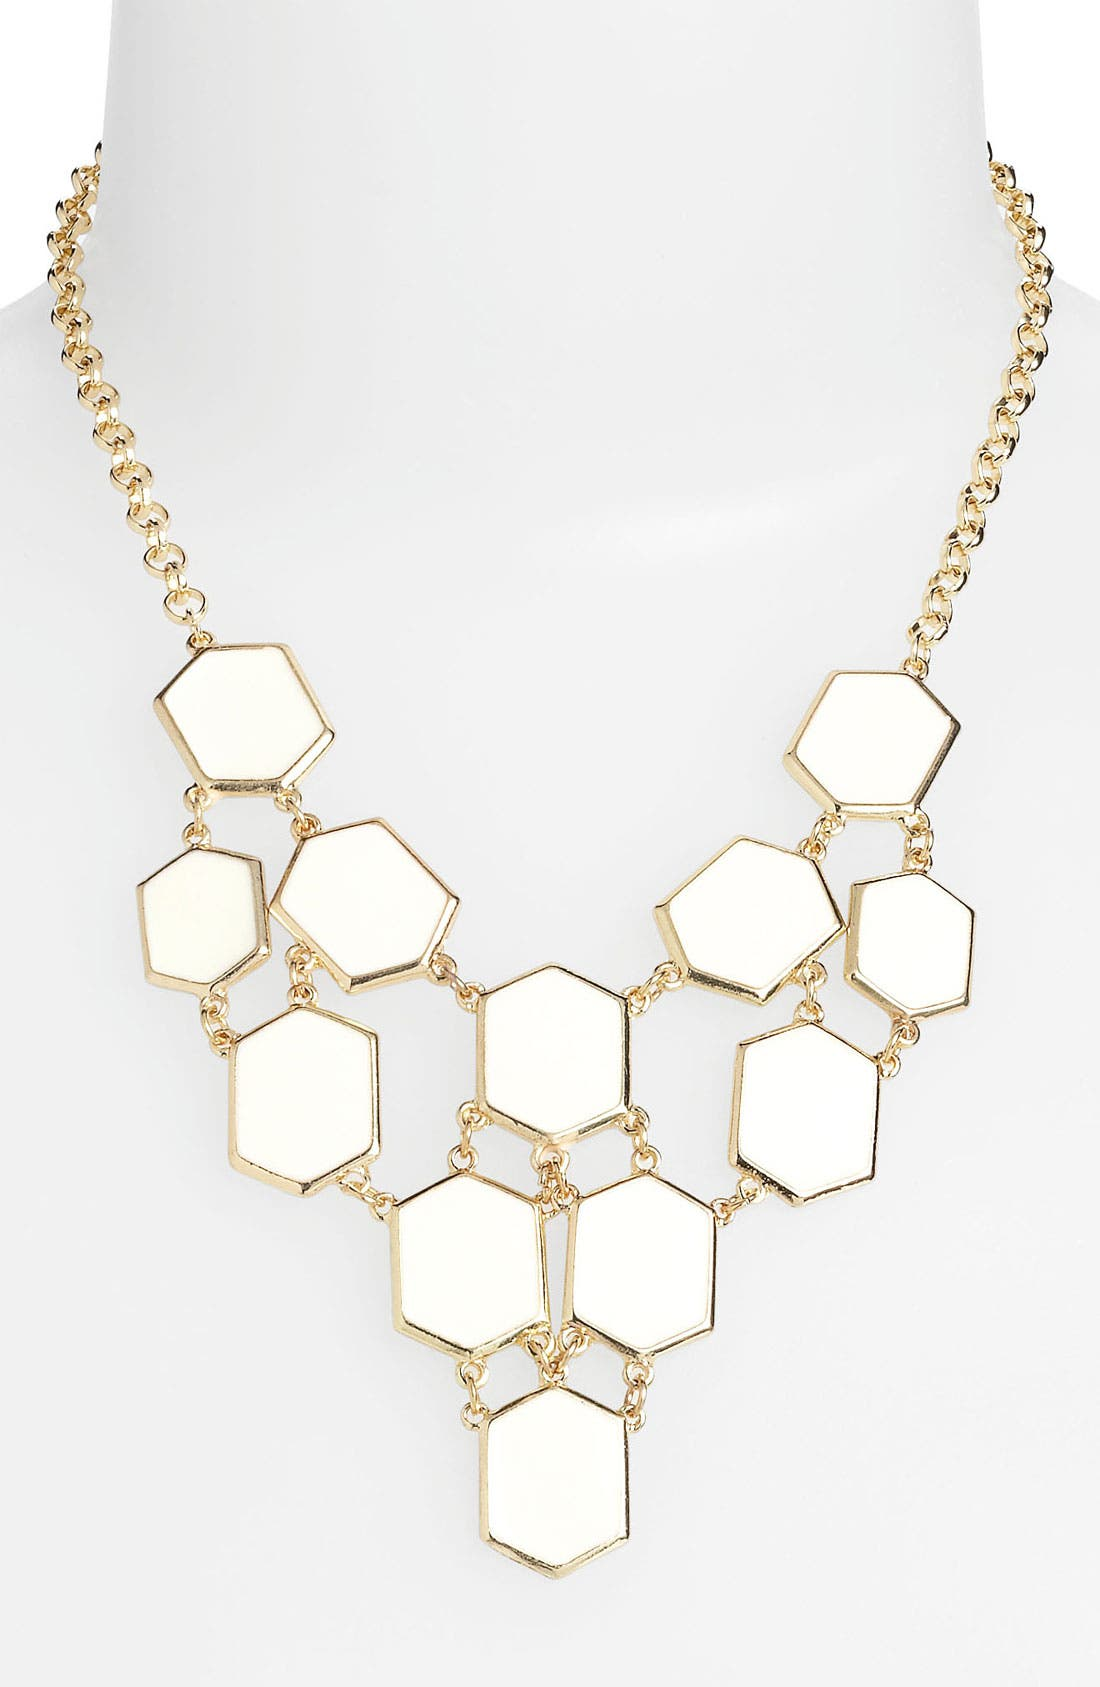 Main Image - Carole Enamel Hexagon Bib Necklace (Online Exclusive)